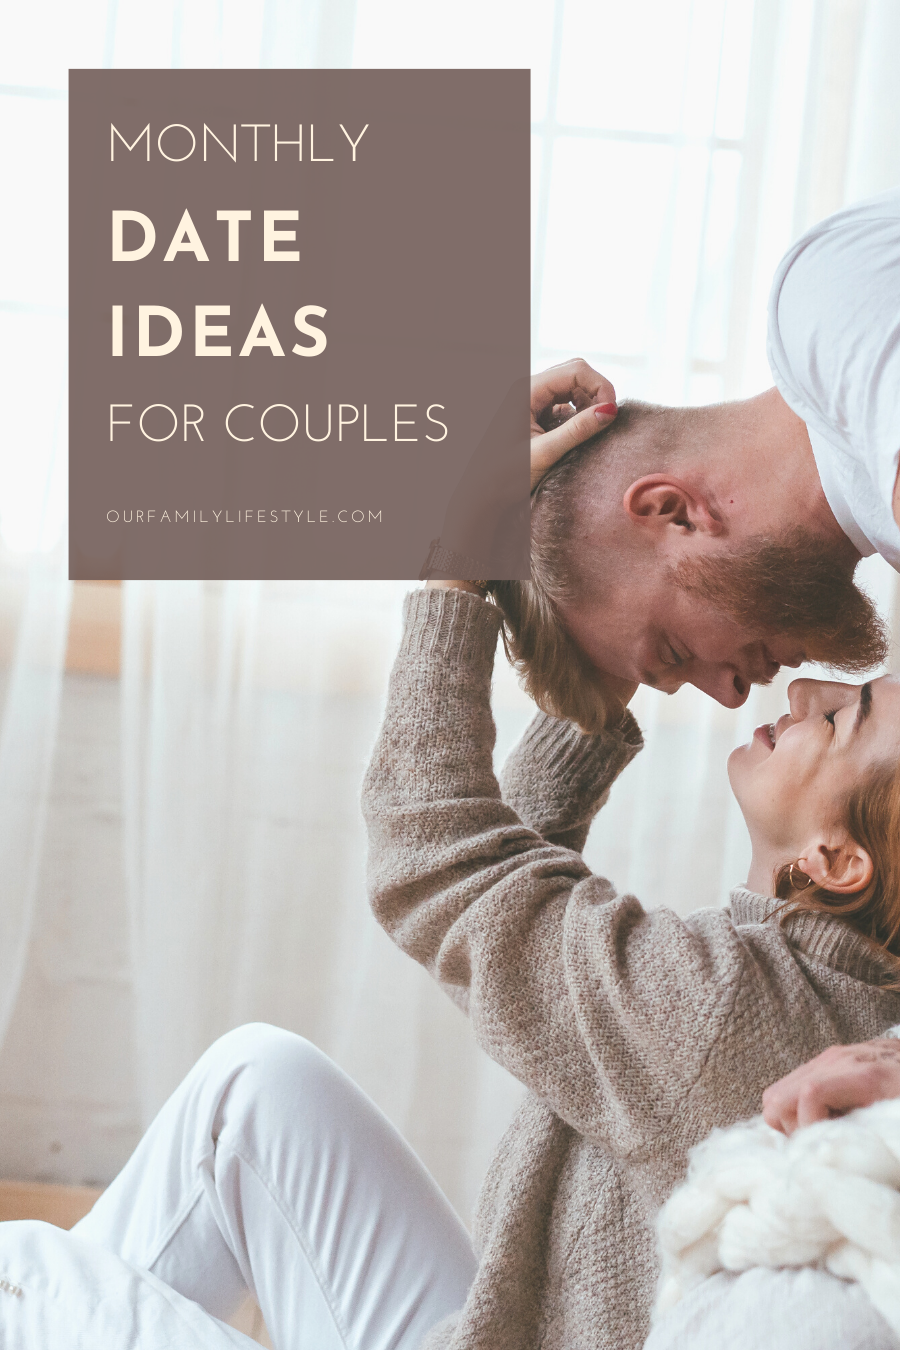 Monthly Date Ideas for Couples